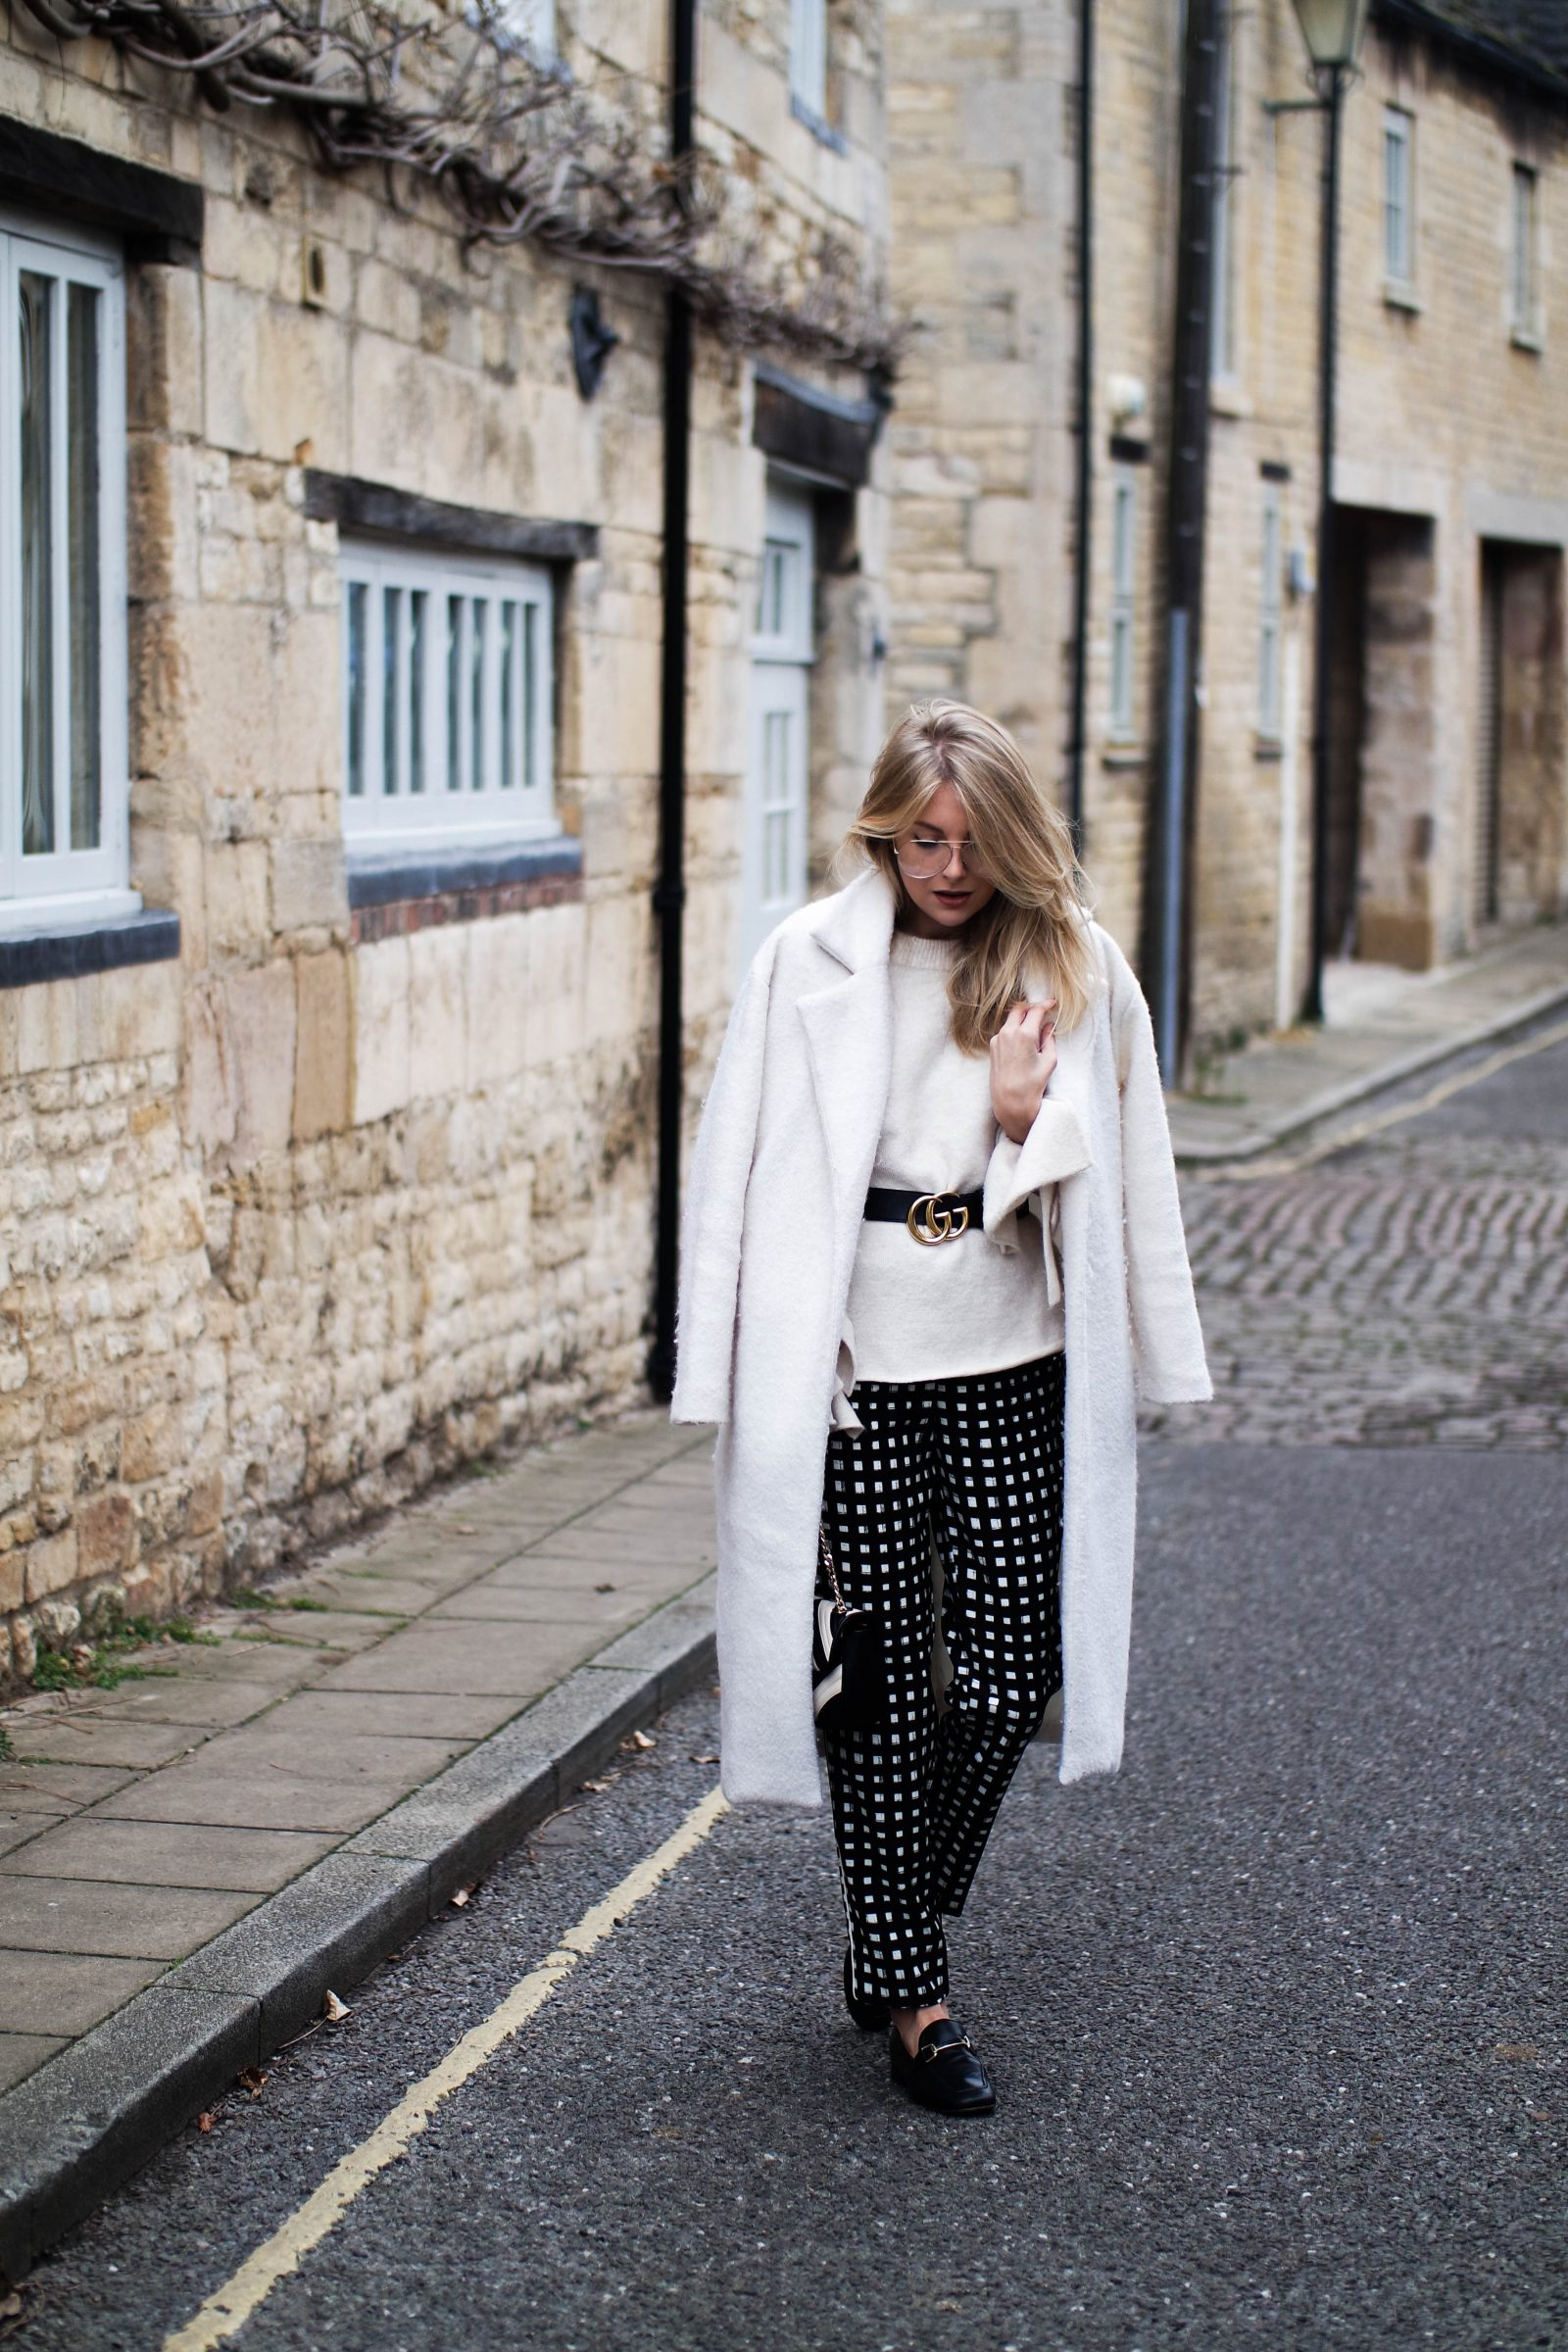 Printed Trousers Trying Something New - Street Style Checked Trousers